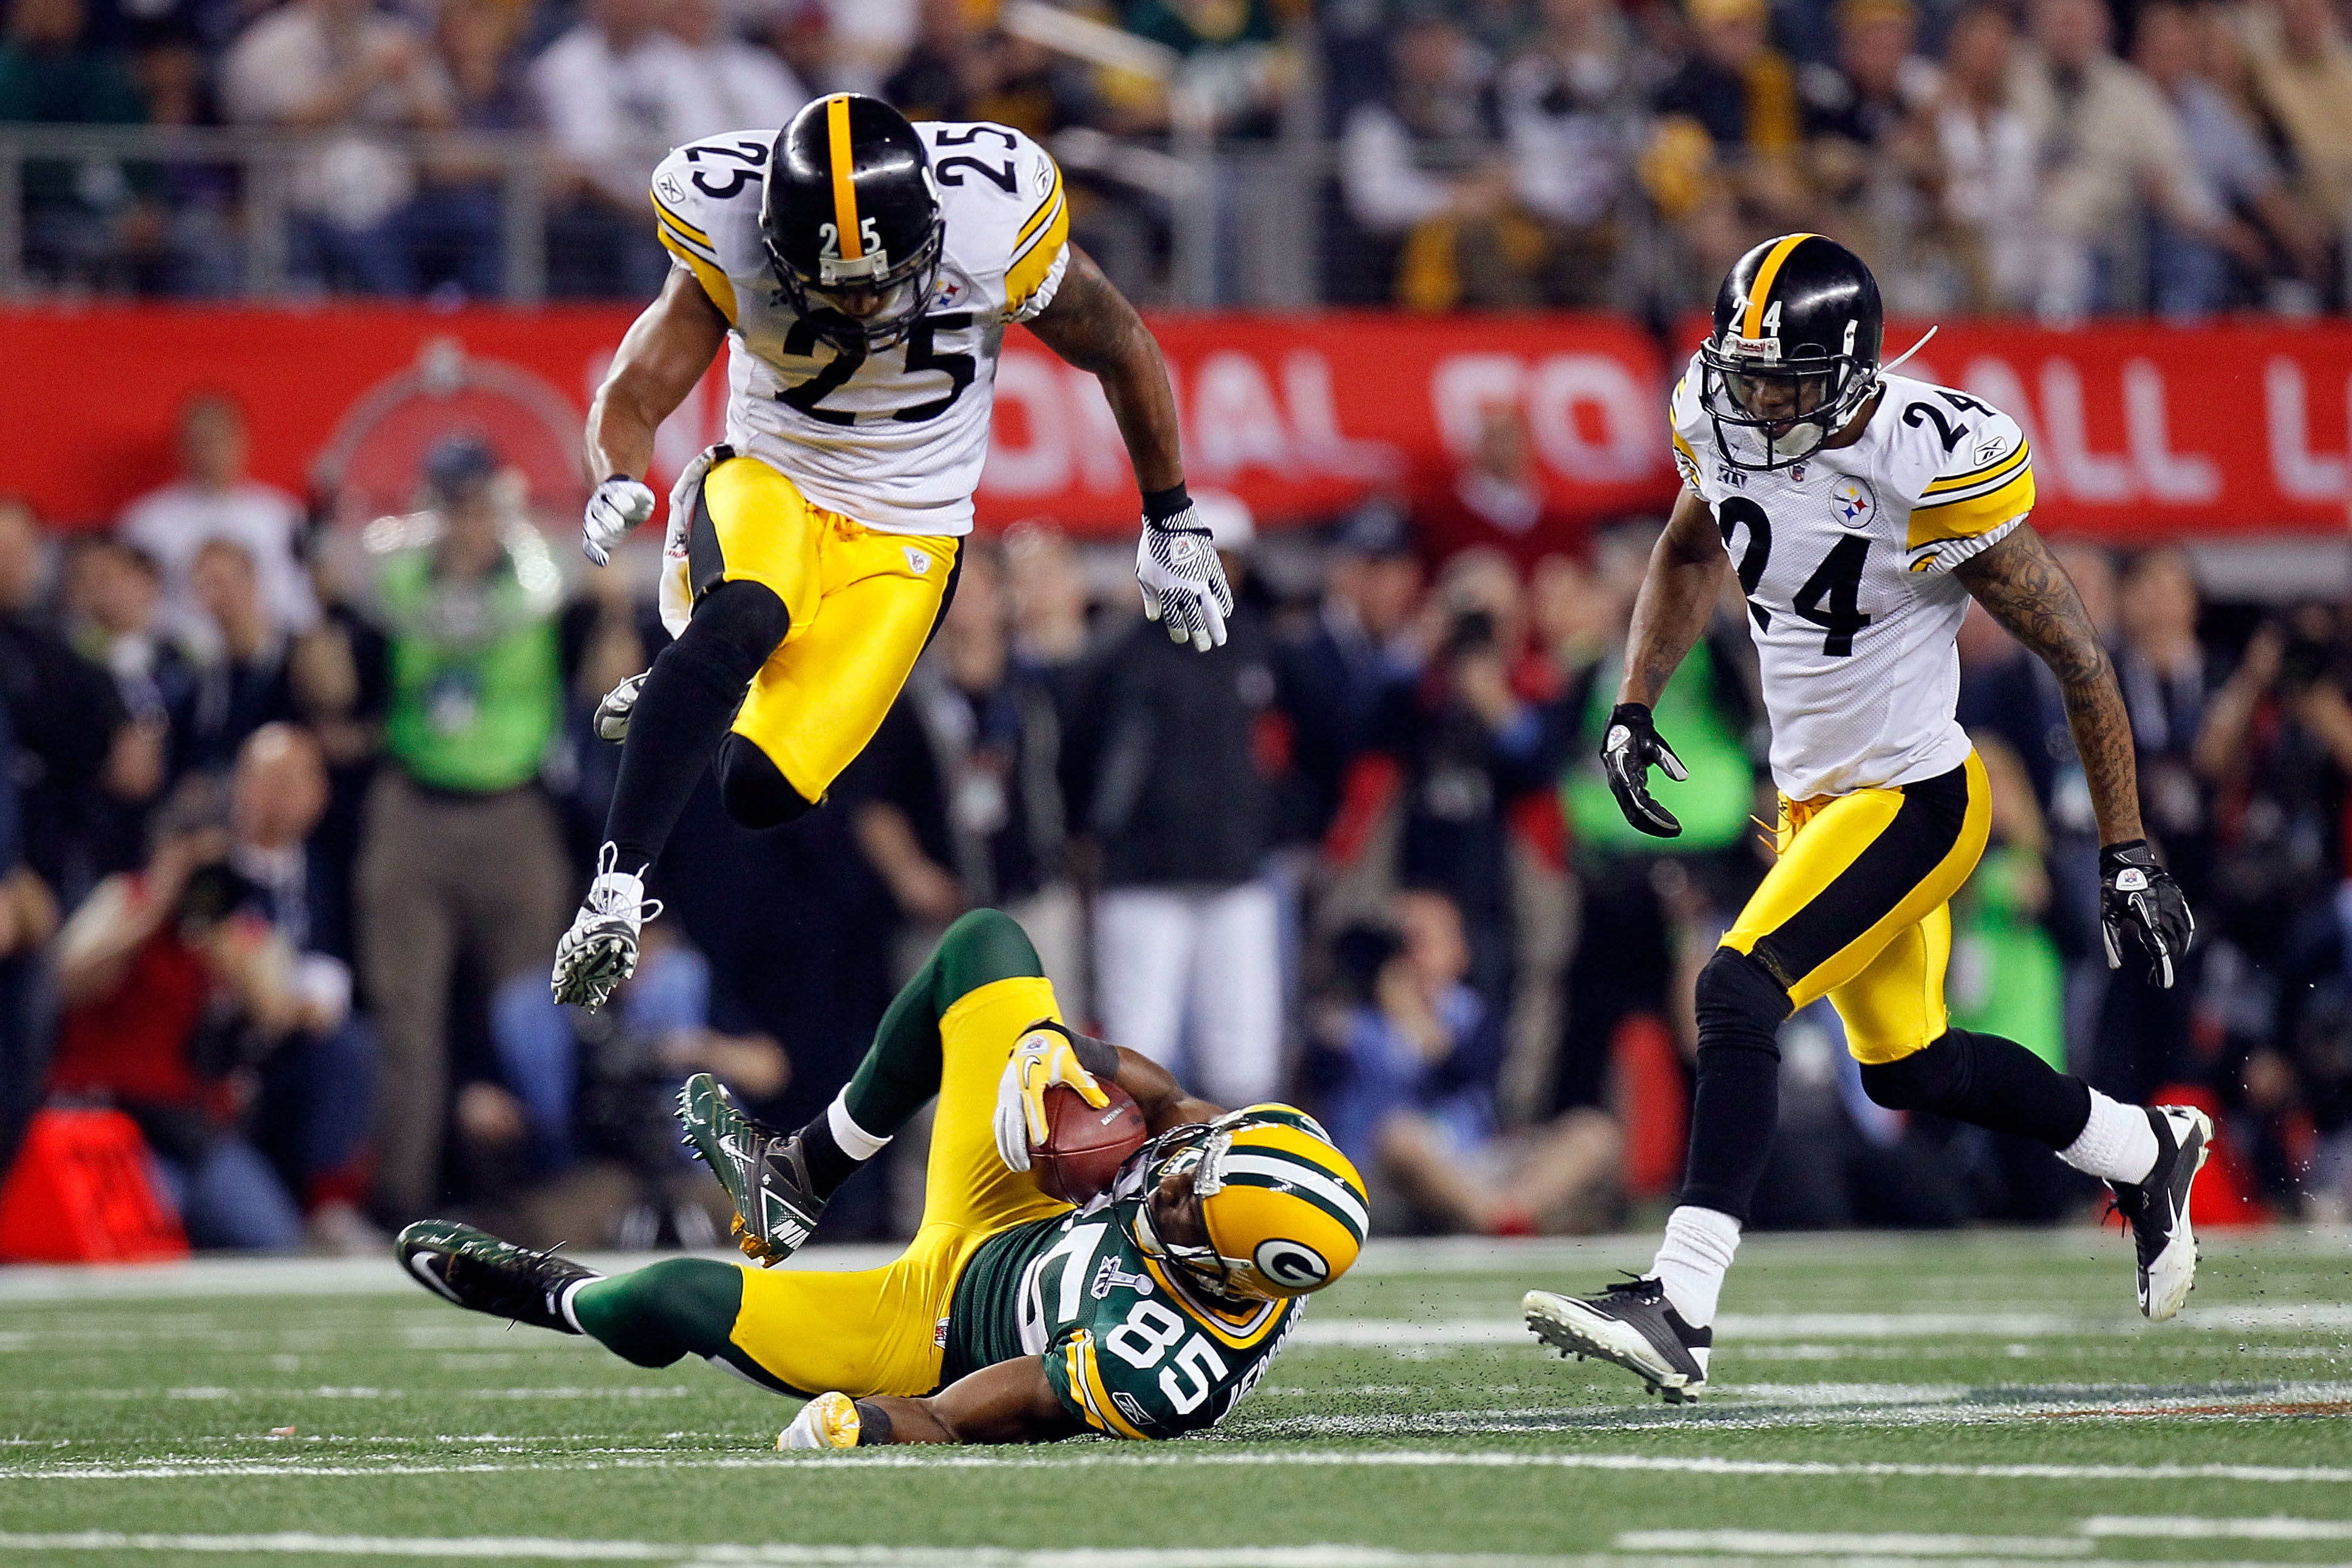 ARLINGTON, TX - FEBRUARY 06:  Greg Jennings #85 of the Green Bay Packers catches a 31 yard pass in the fourth quarter against Ryan Clark #25 and Ike Taylor #24 of the Pittsburgh Steelers during Super Bowl XLV at Cowboys Stadium on February 6, 2011 in Arli